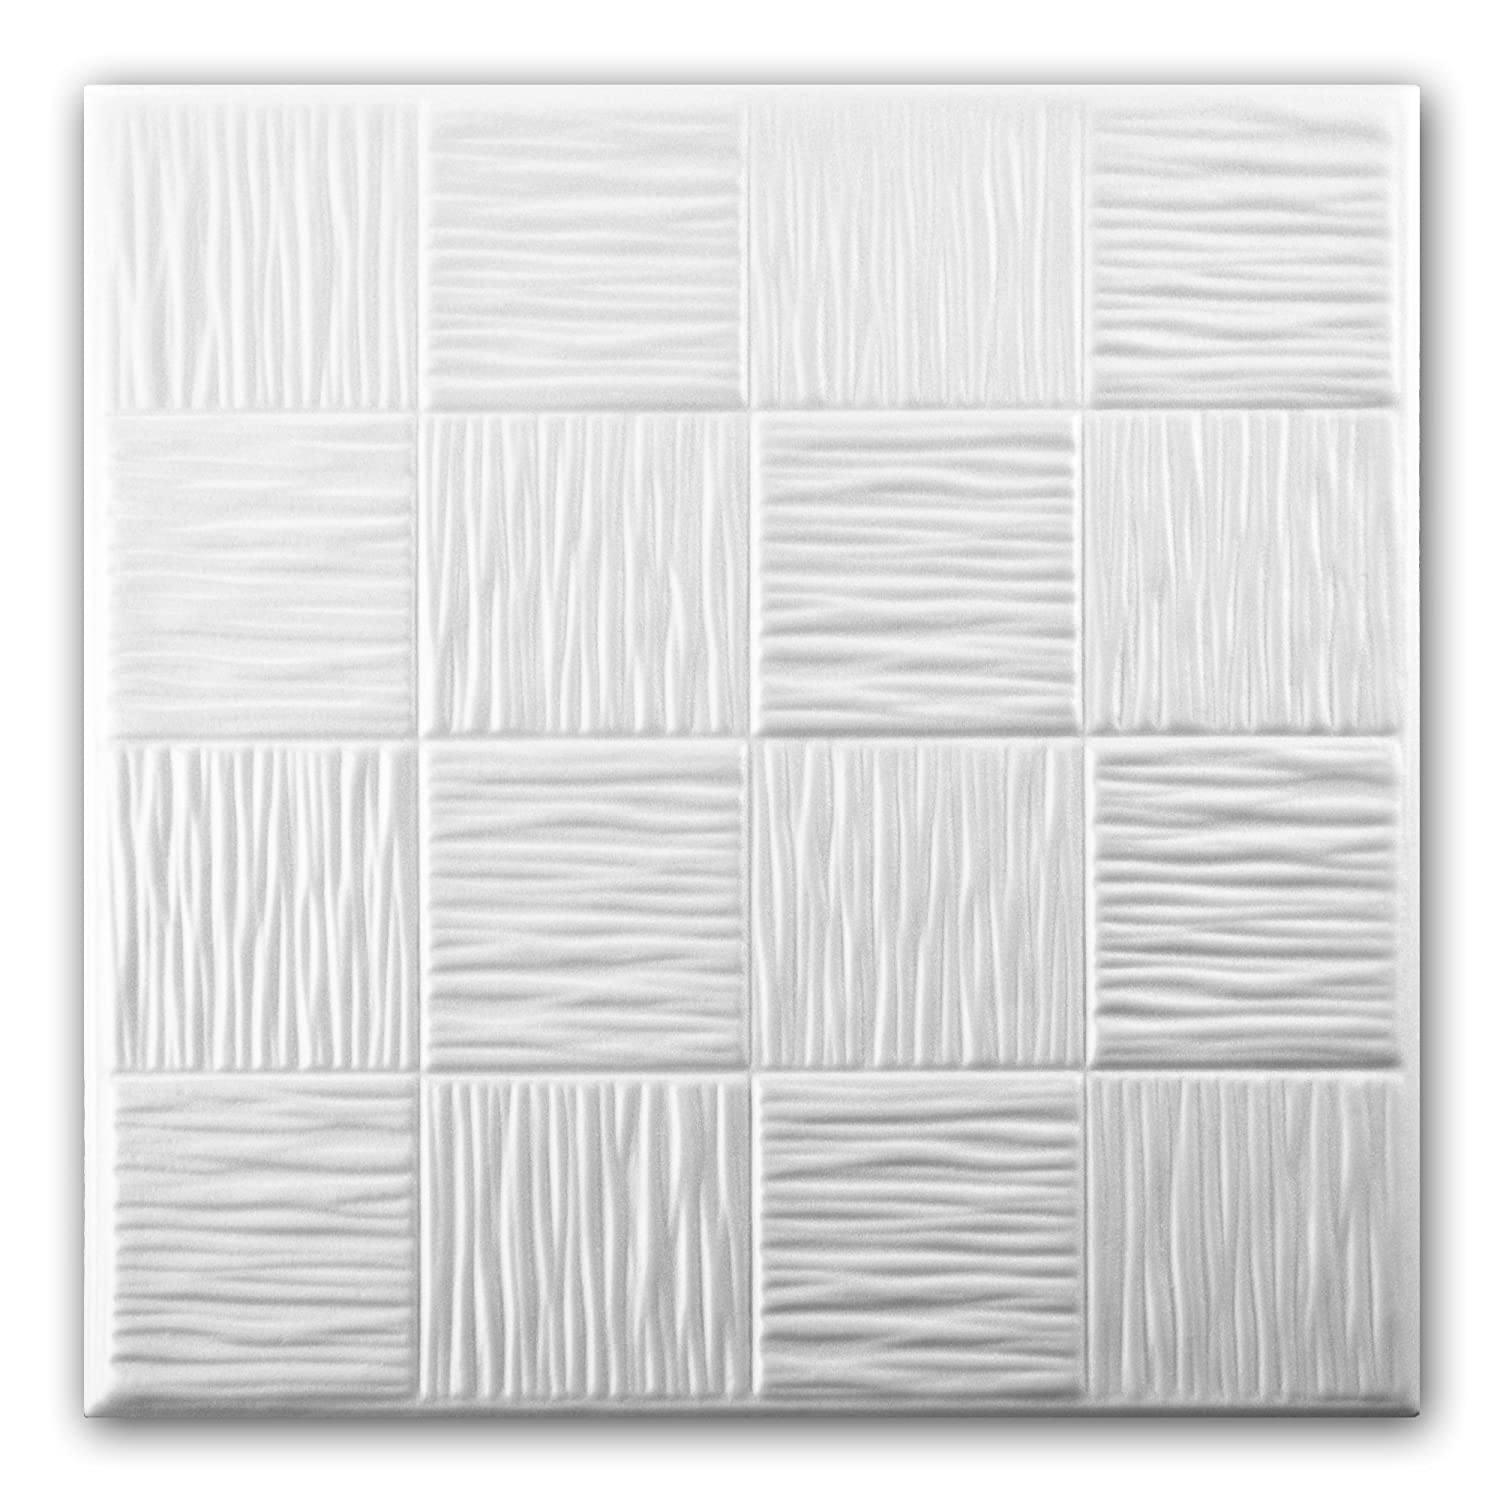 Polystyrene foam ceiling tiles panels 0810 pack 112 pcs 28 sqm polystyrene foam ceiling tiles panels 0810 pack 112 pcs 28 sqm white amazon diy tools dailygadgetfo Images